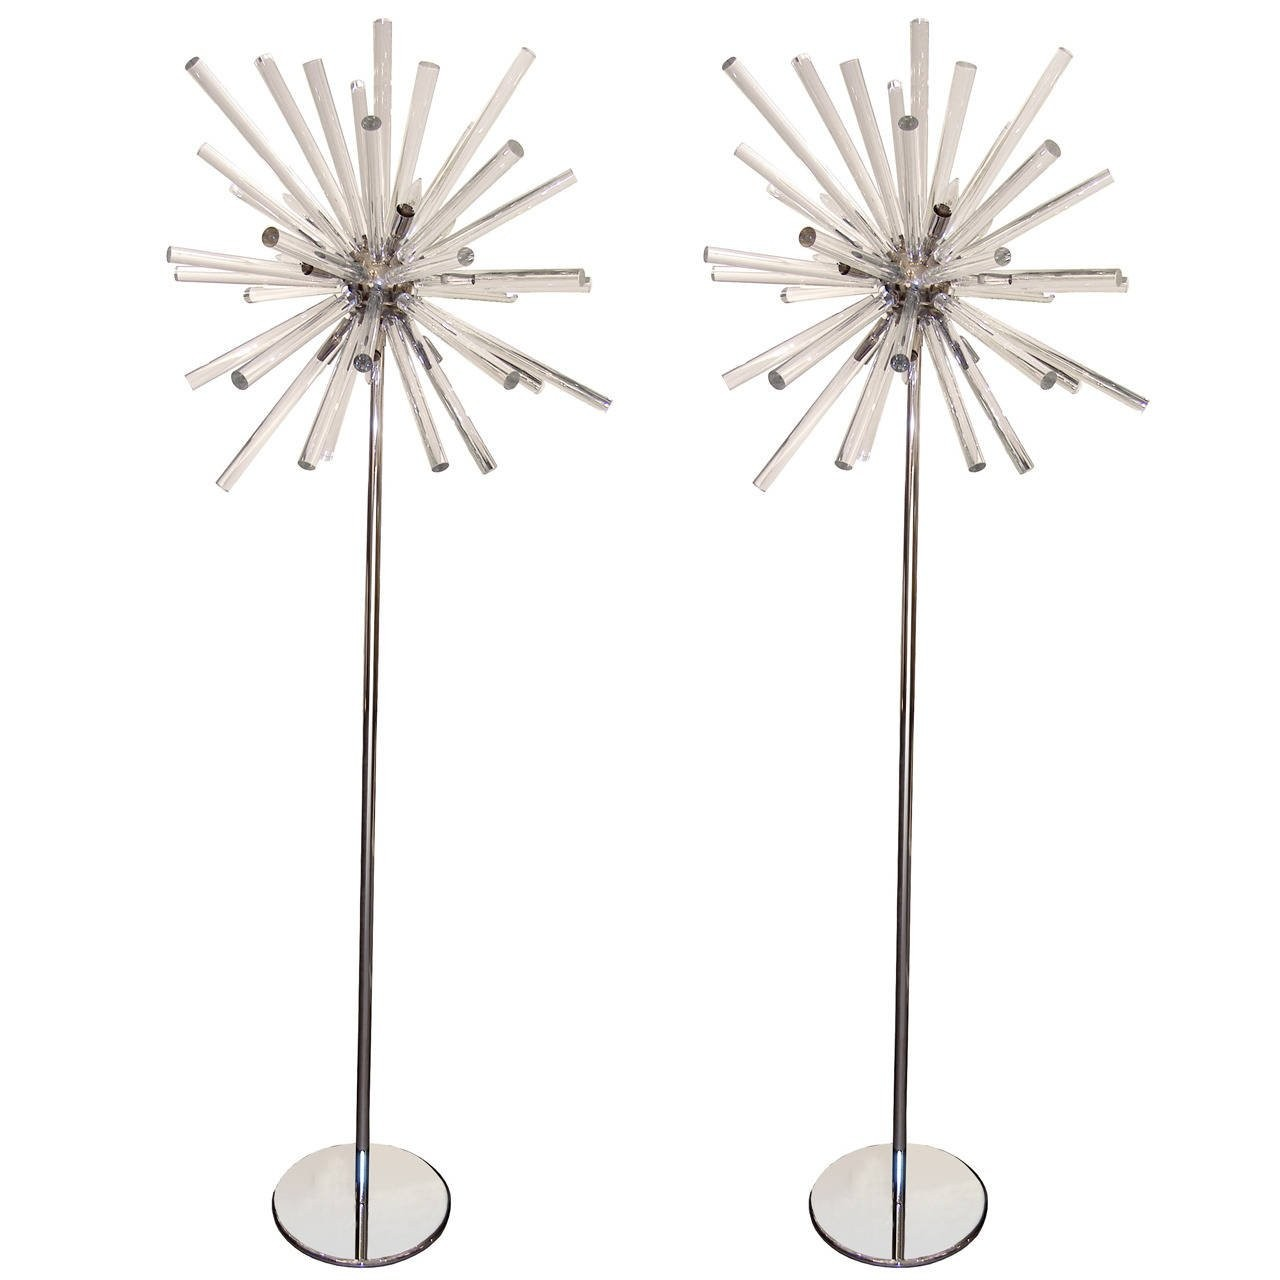 Pair of Stainless Steel and Glass Sputnik Floor Lamps